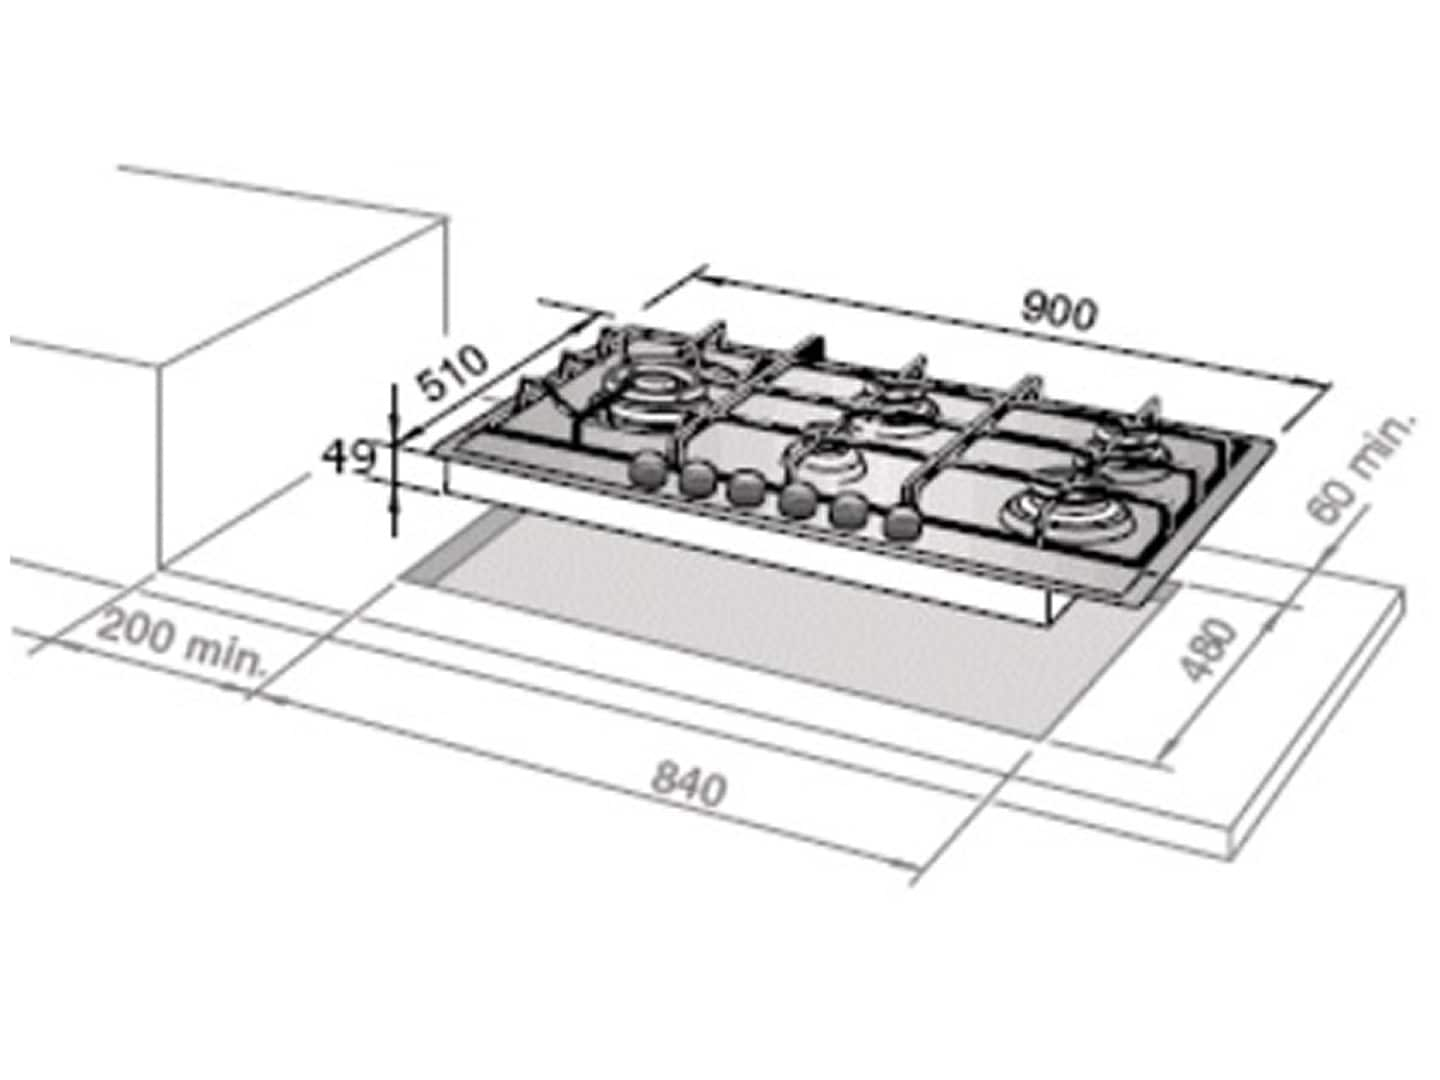 90cm 5 Burner Slimline Gas Cooktop DEGHSL90 Installation Diagram